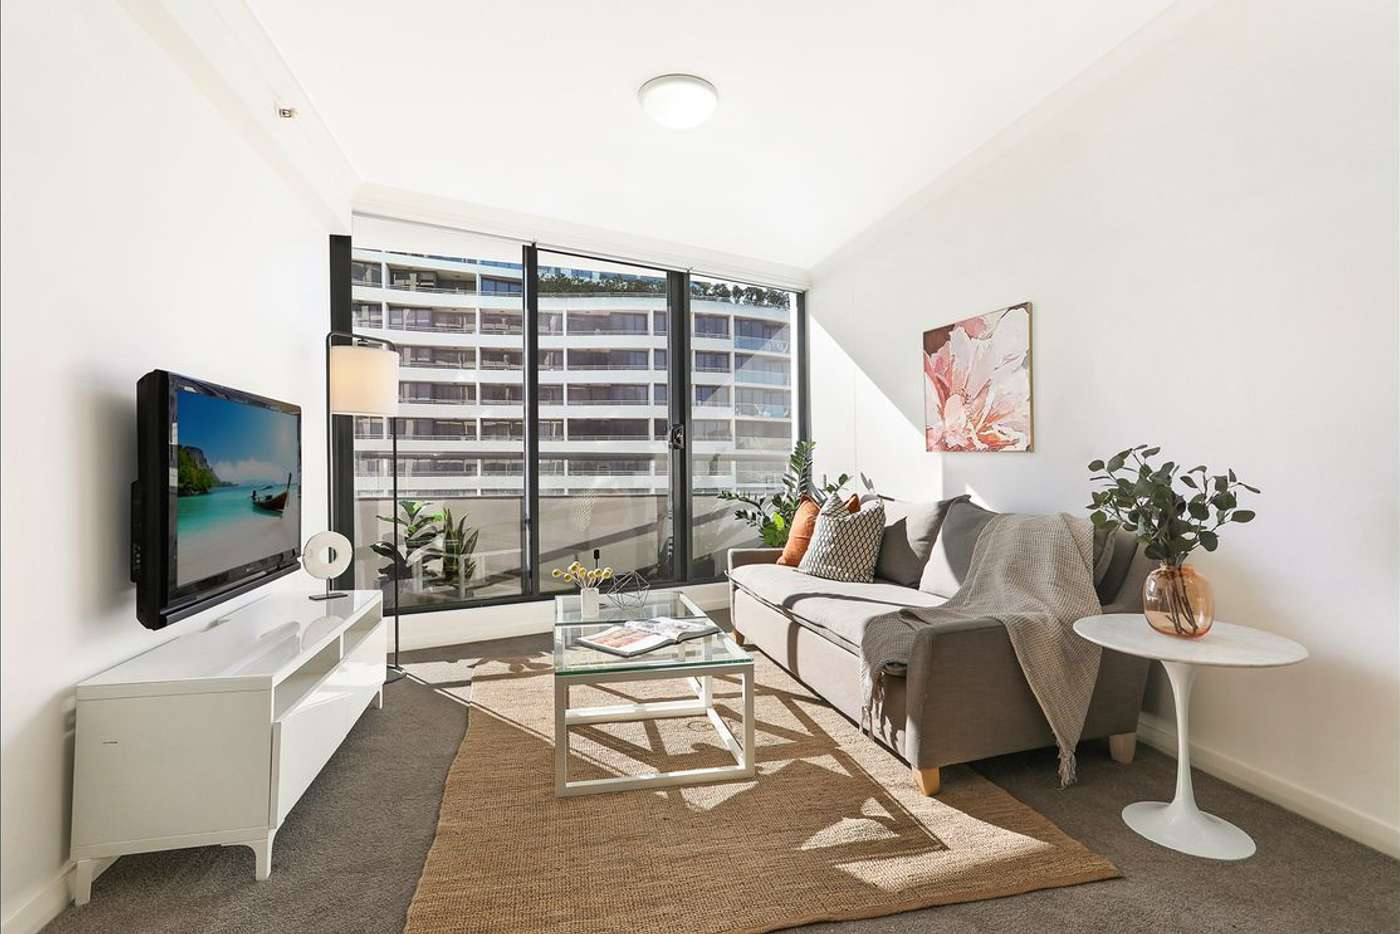 Main view of Homely apartment listing, 1201/3 Herbert Street, St Leonards NSW 2065